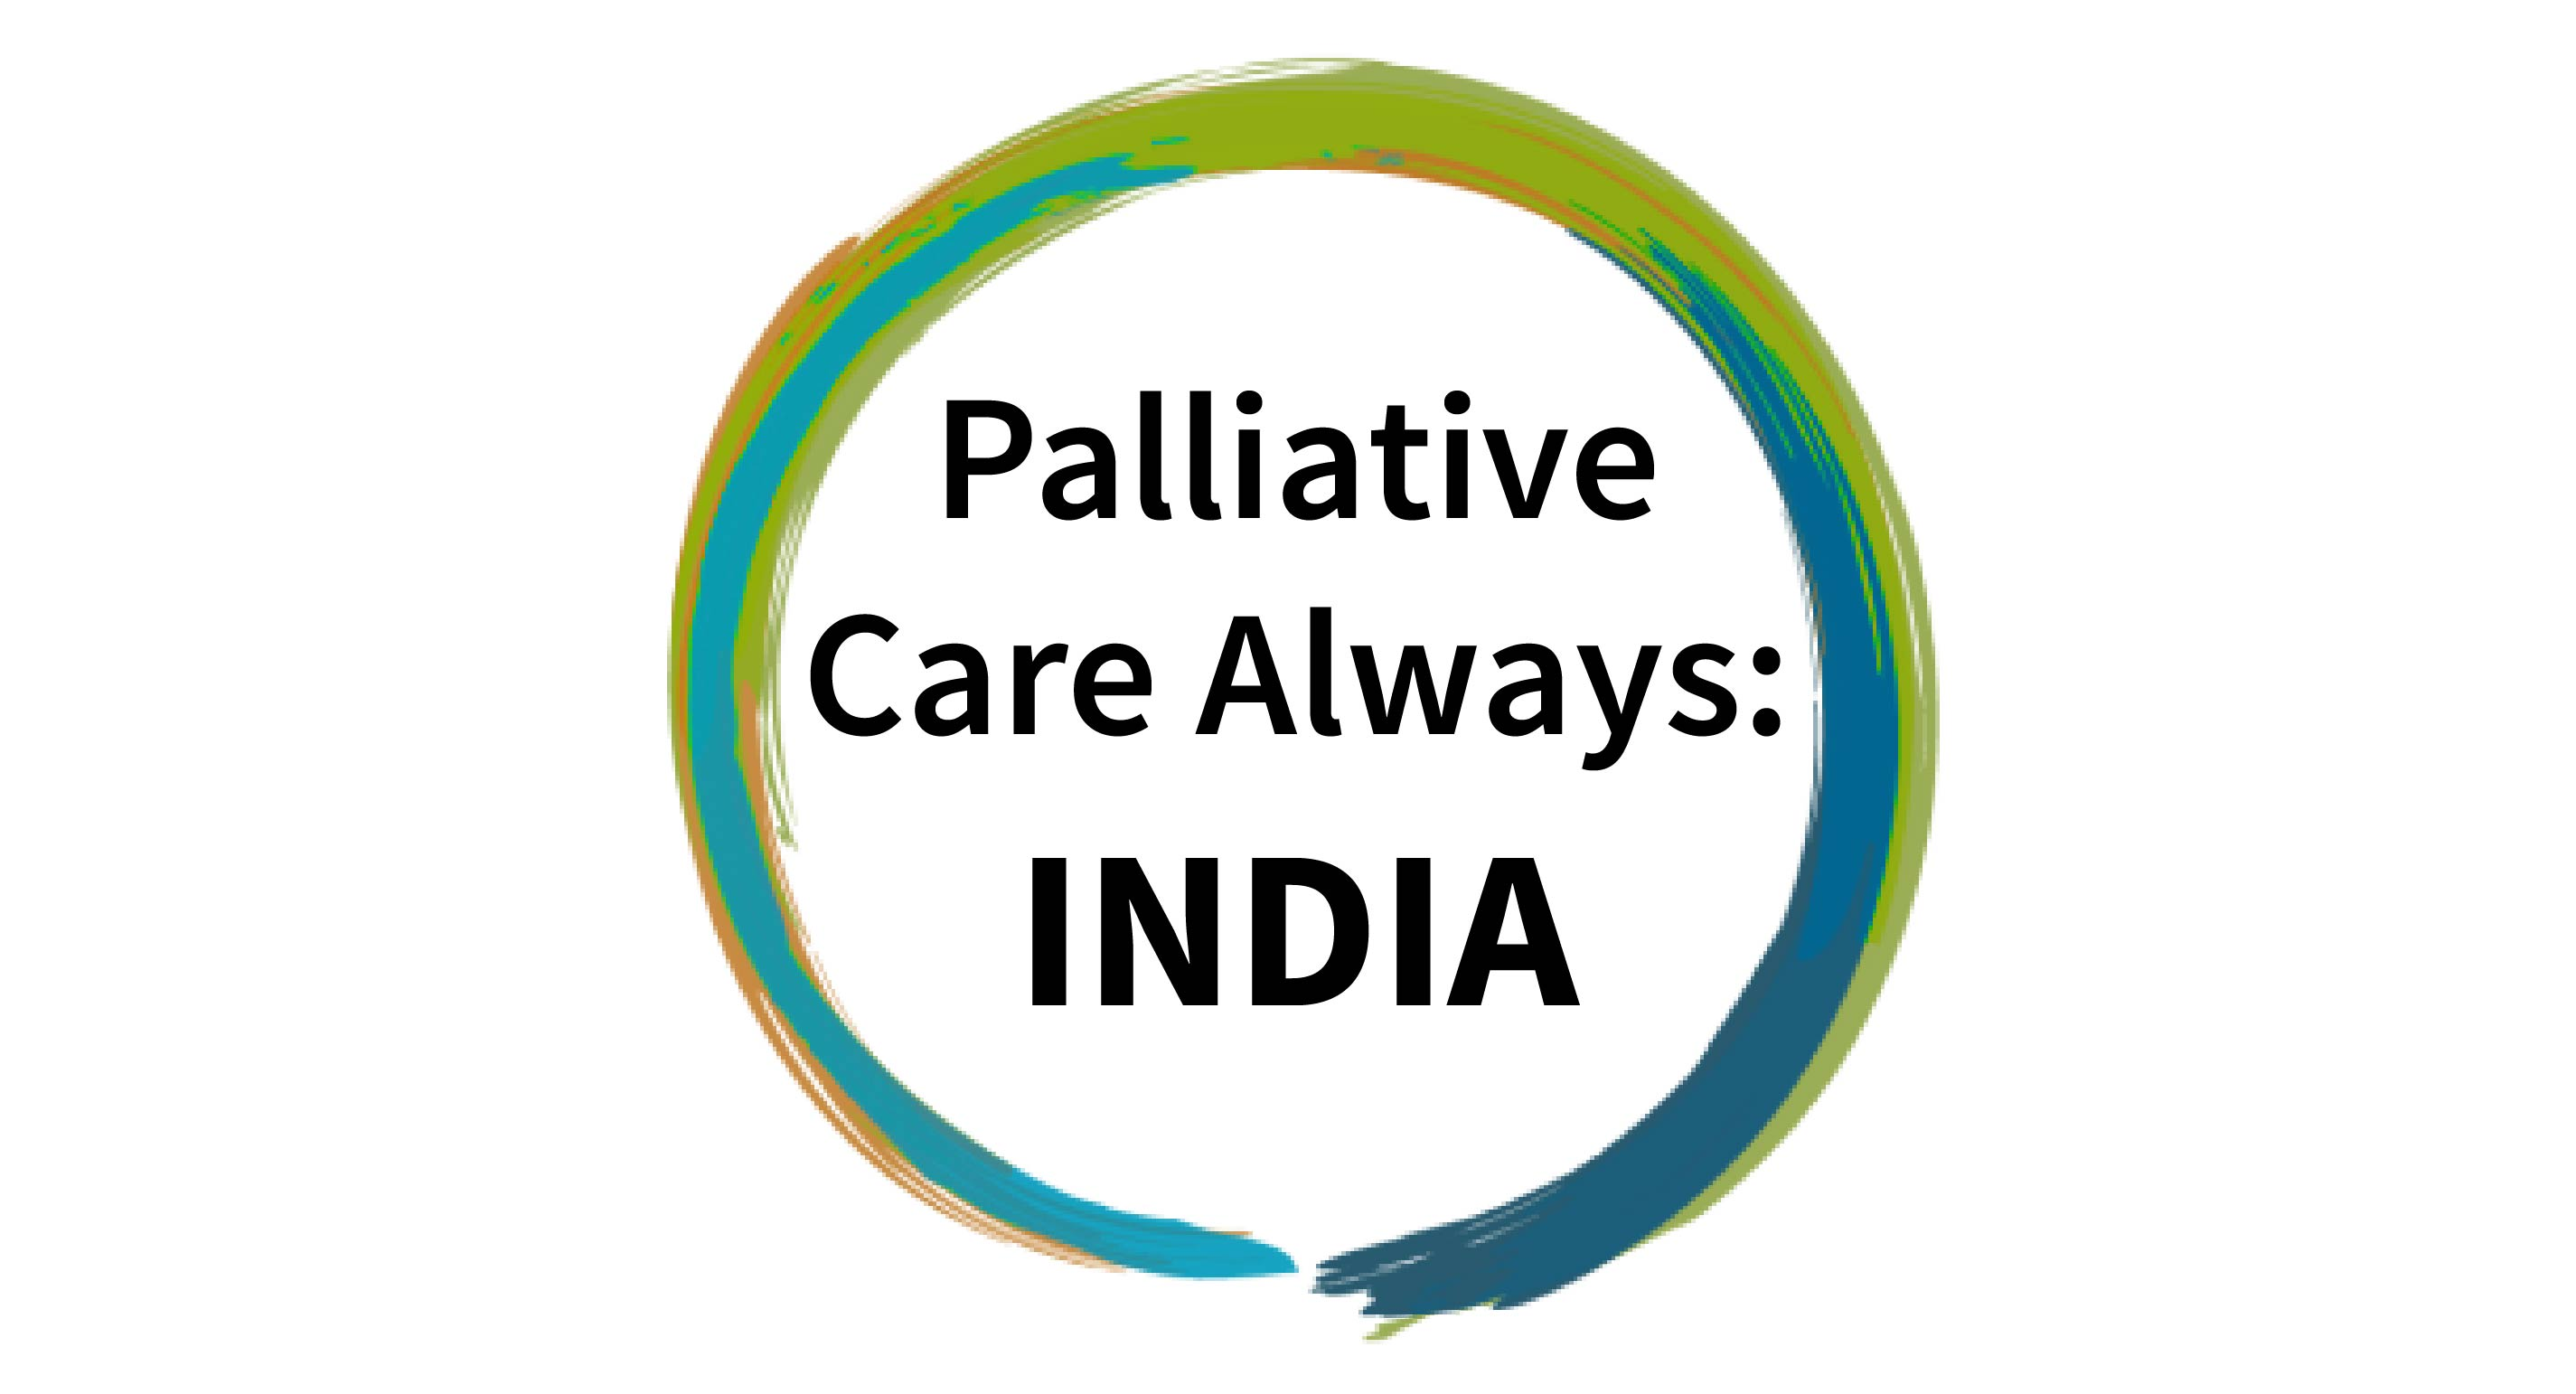 Palliative Care Always